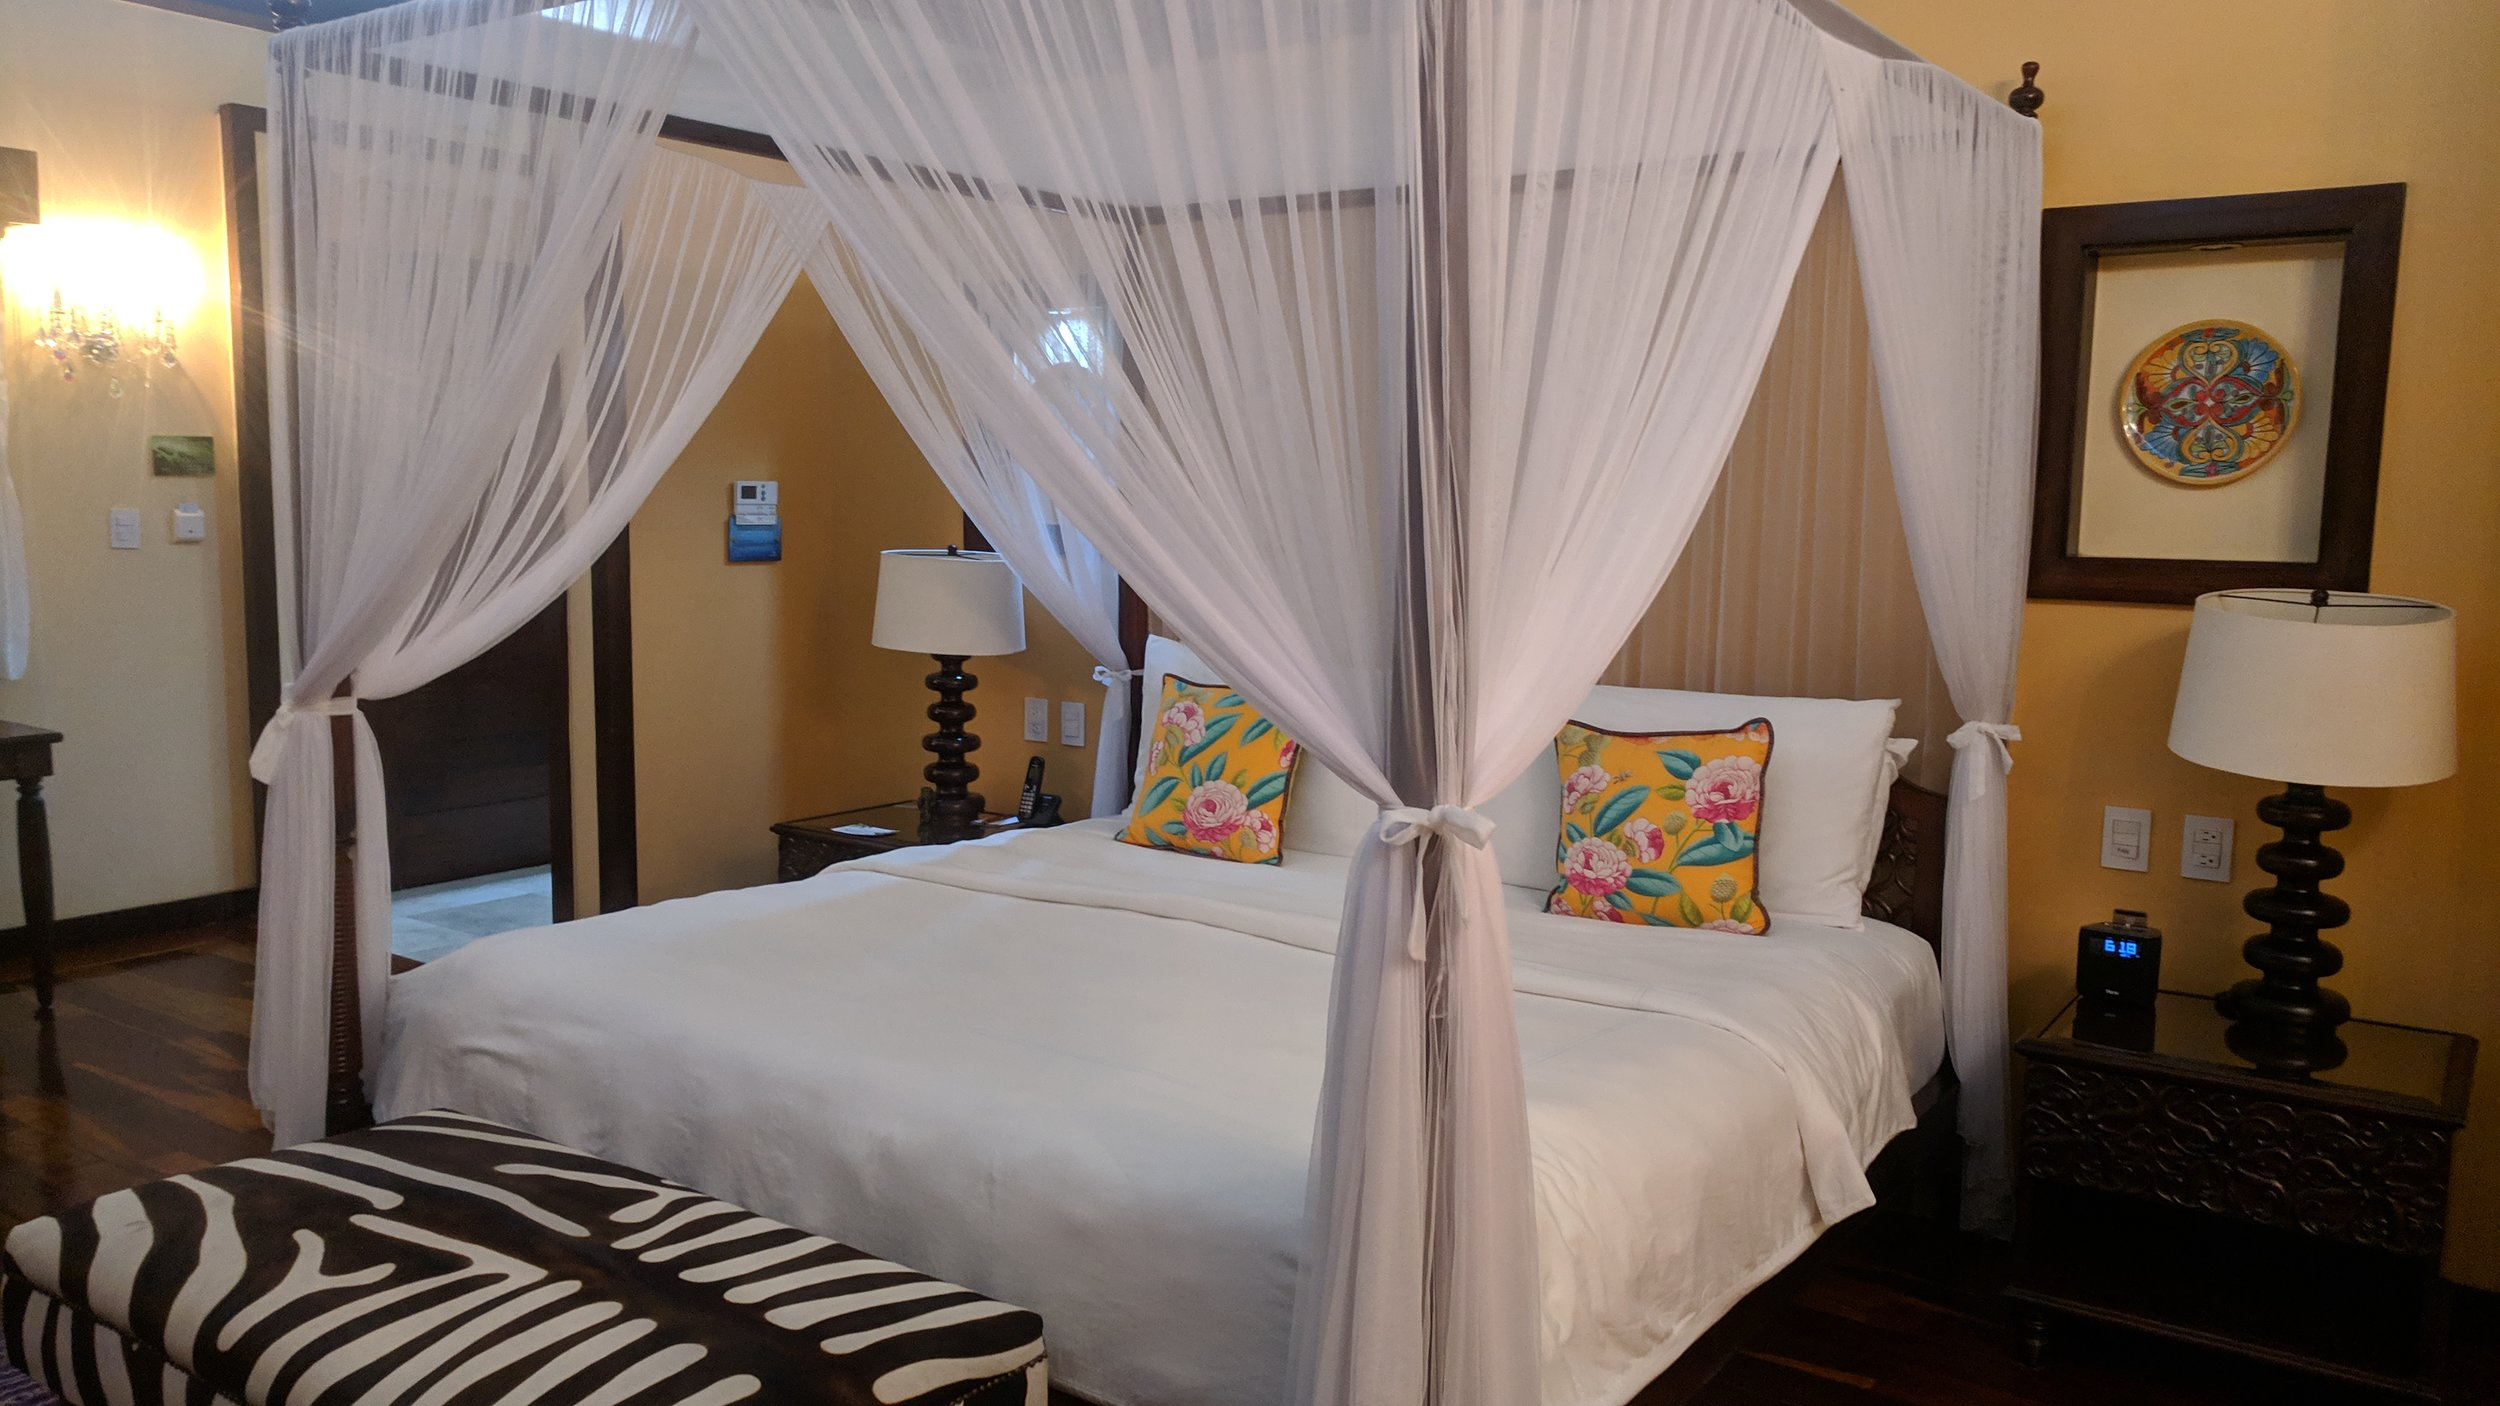 We had a full canopy bed which was also really comfortable.